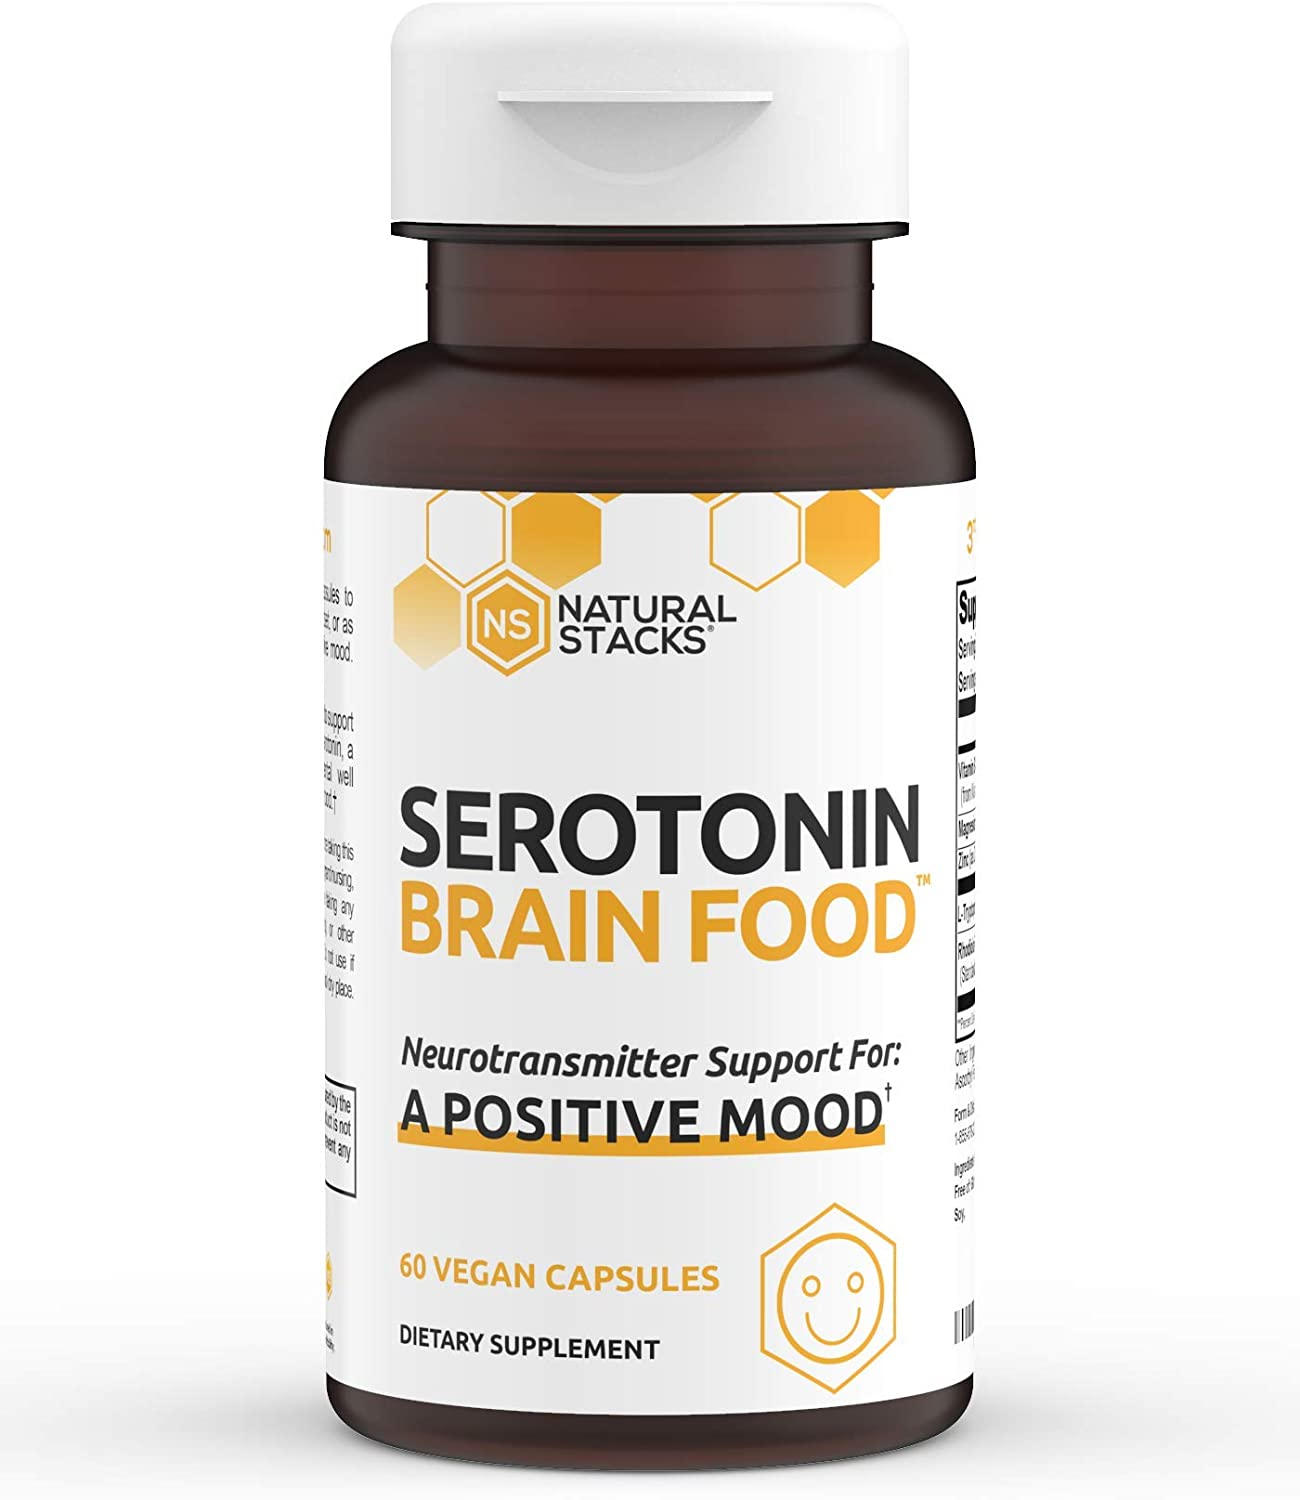 Natural Stacks Serotonin Supplement 60 ct. - Powerful Stress Relief and Mood Booster - for Men and Women - Brain Food Formula Enhances Serotonin Production